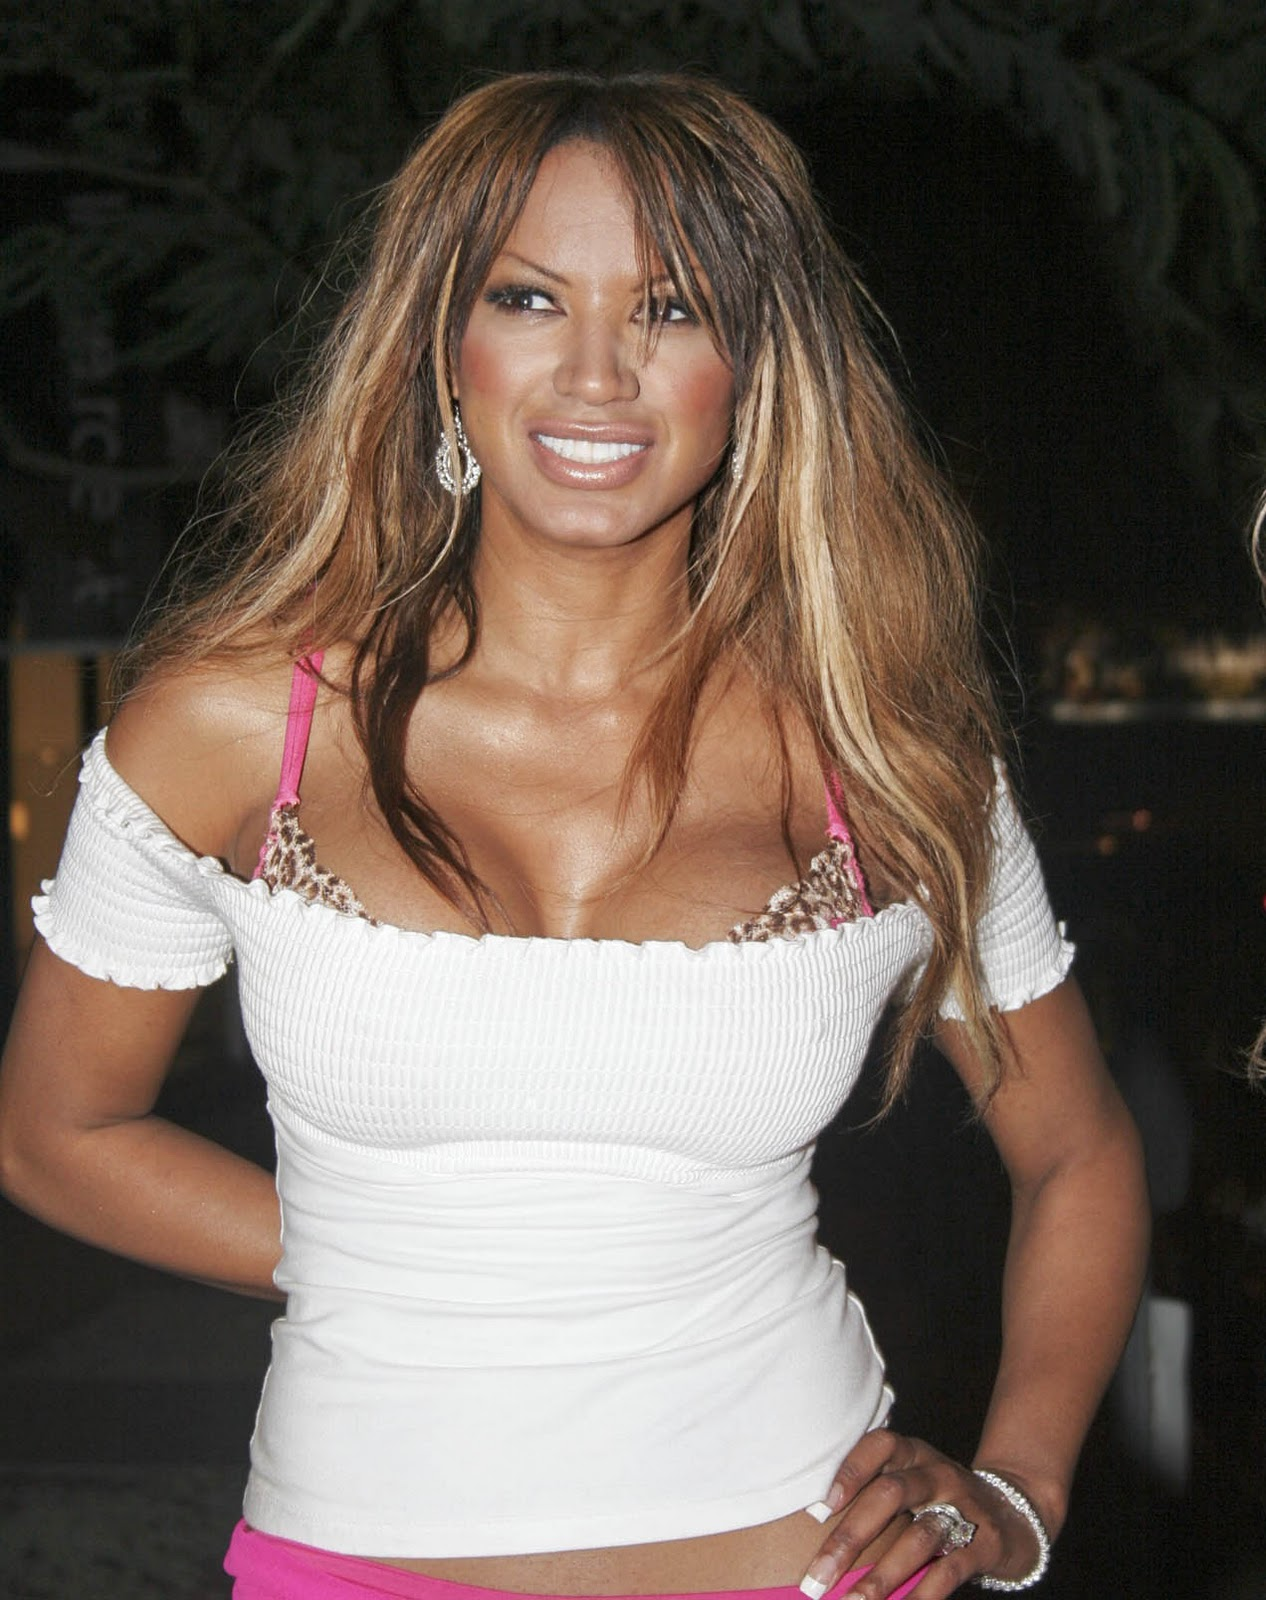 Traci Bingham And Her Classy Tits 02 are not pregnant or small